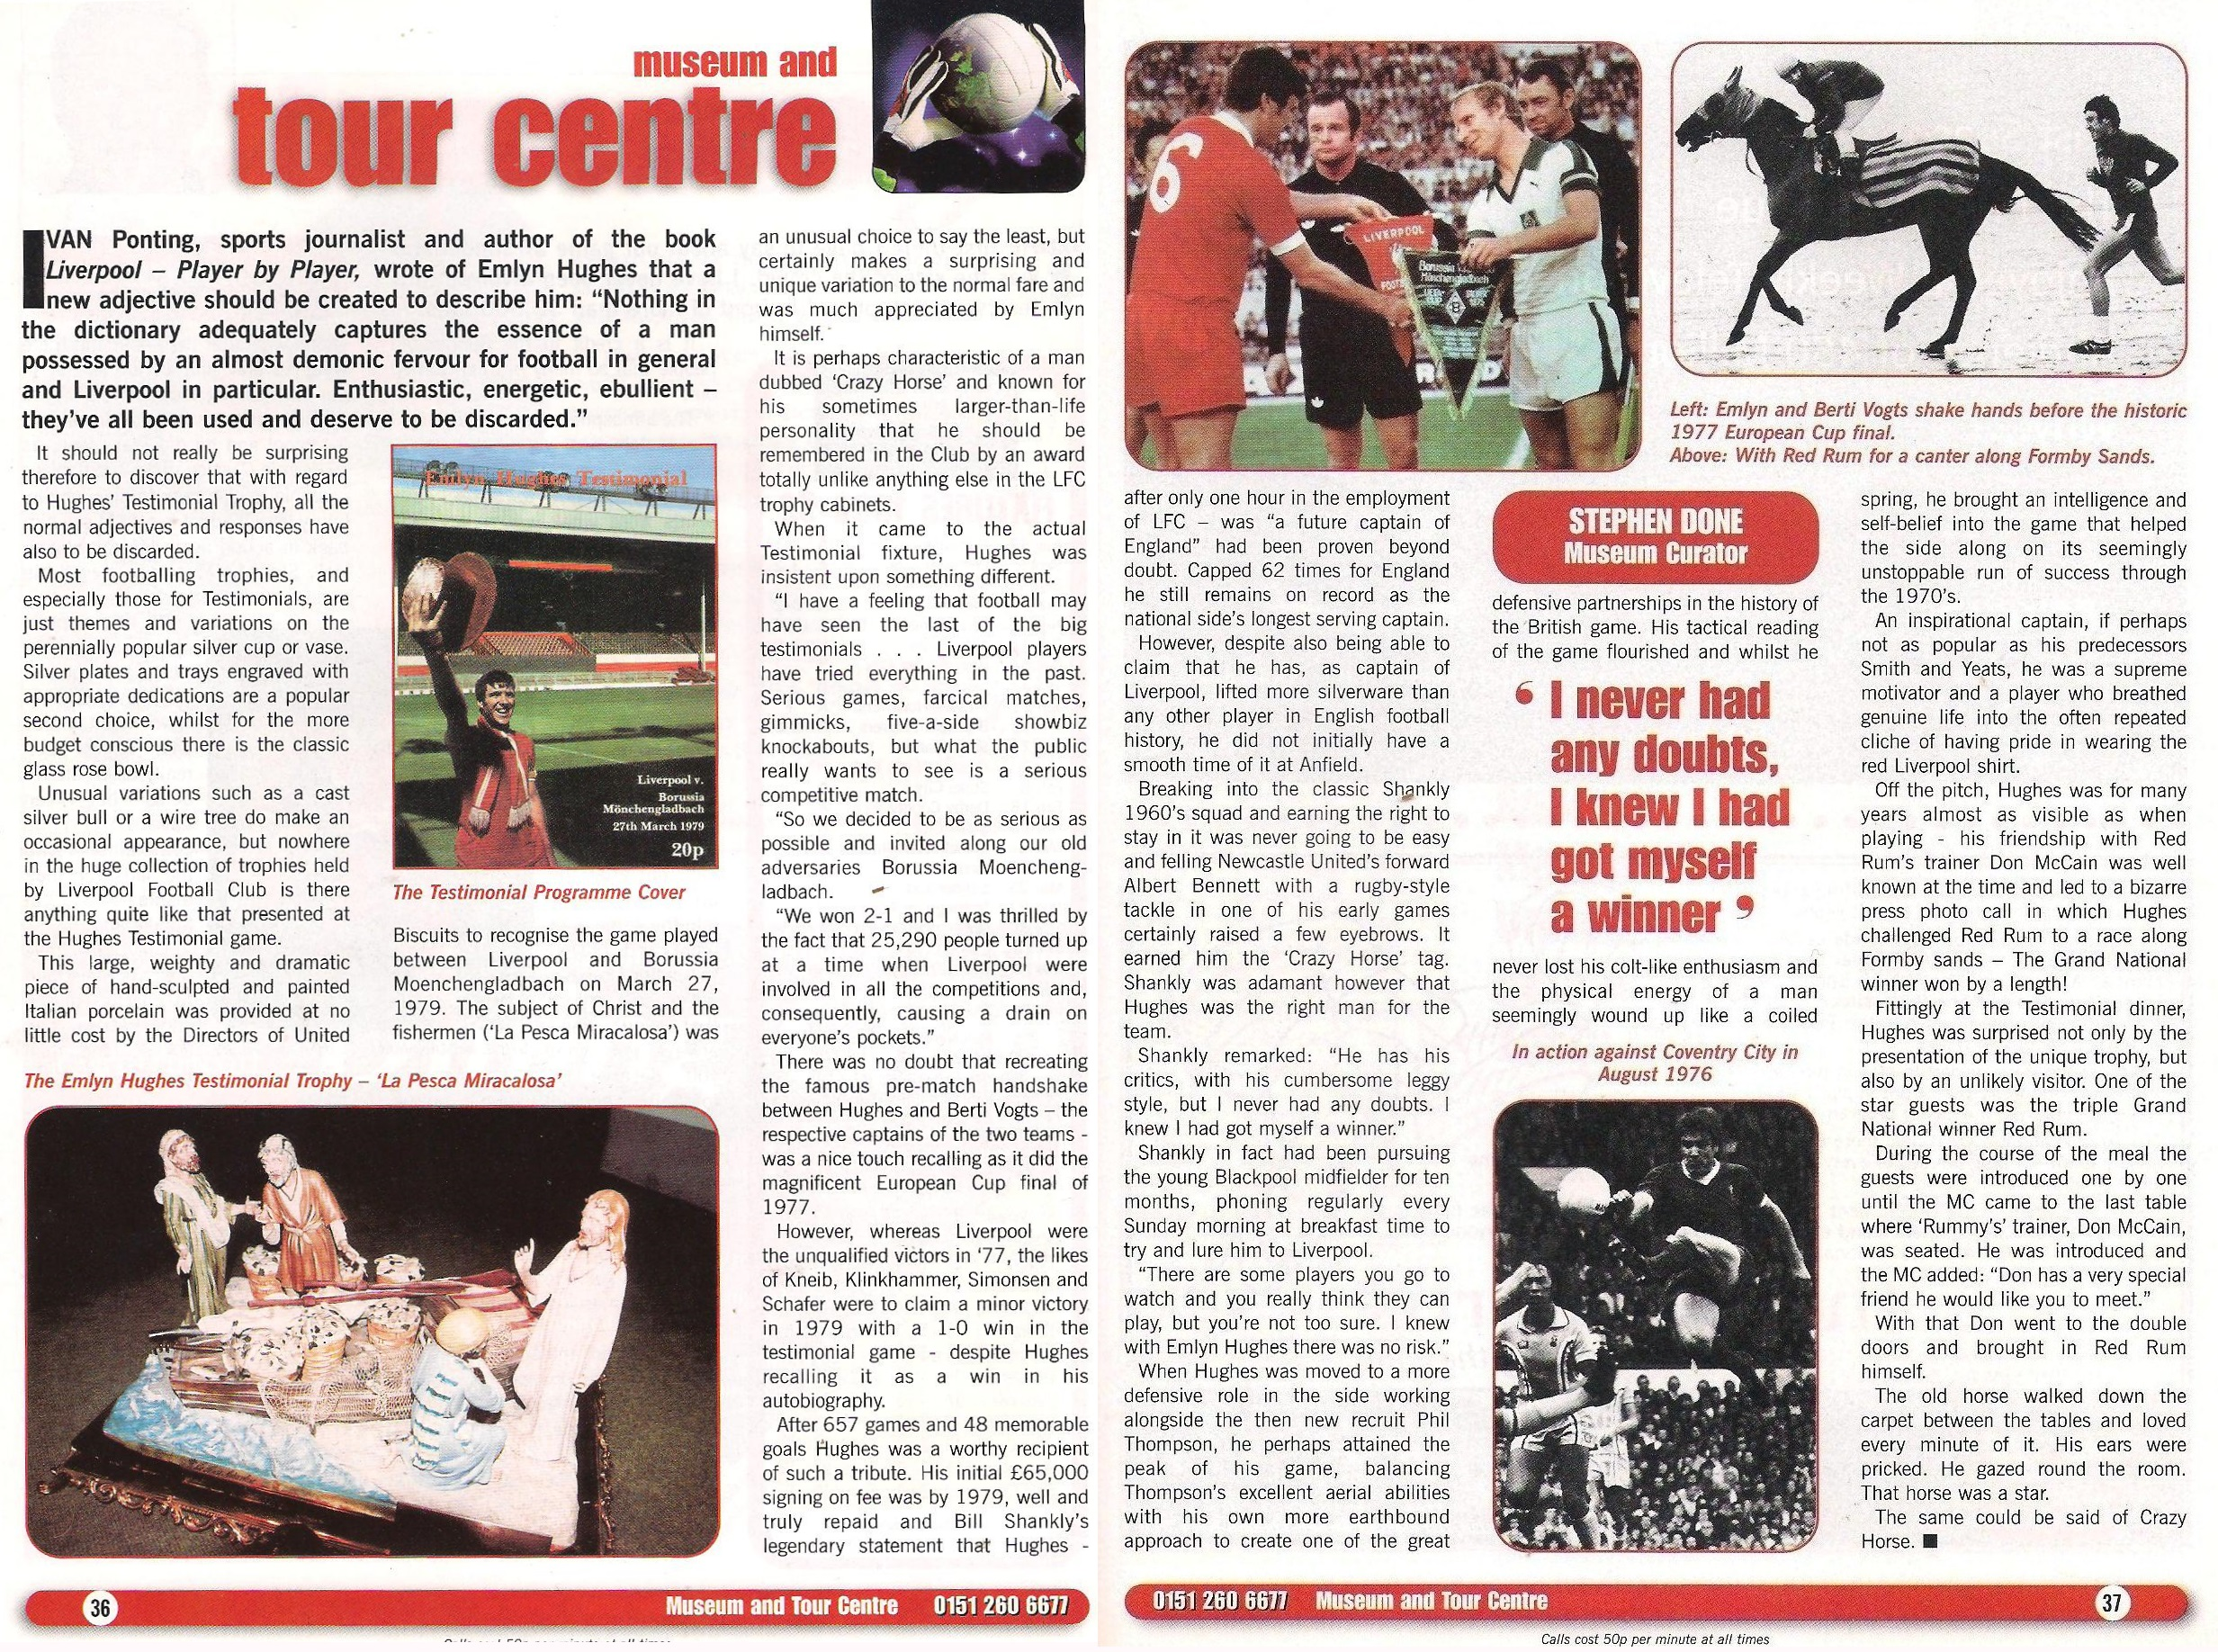 Stephen Done's column in Liverpool's match programme